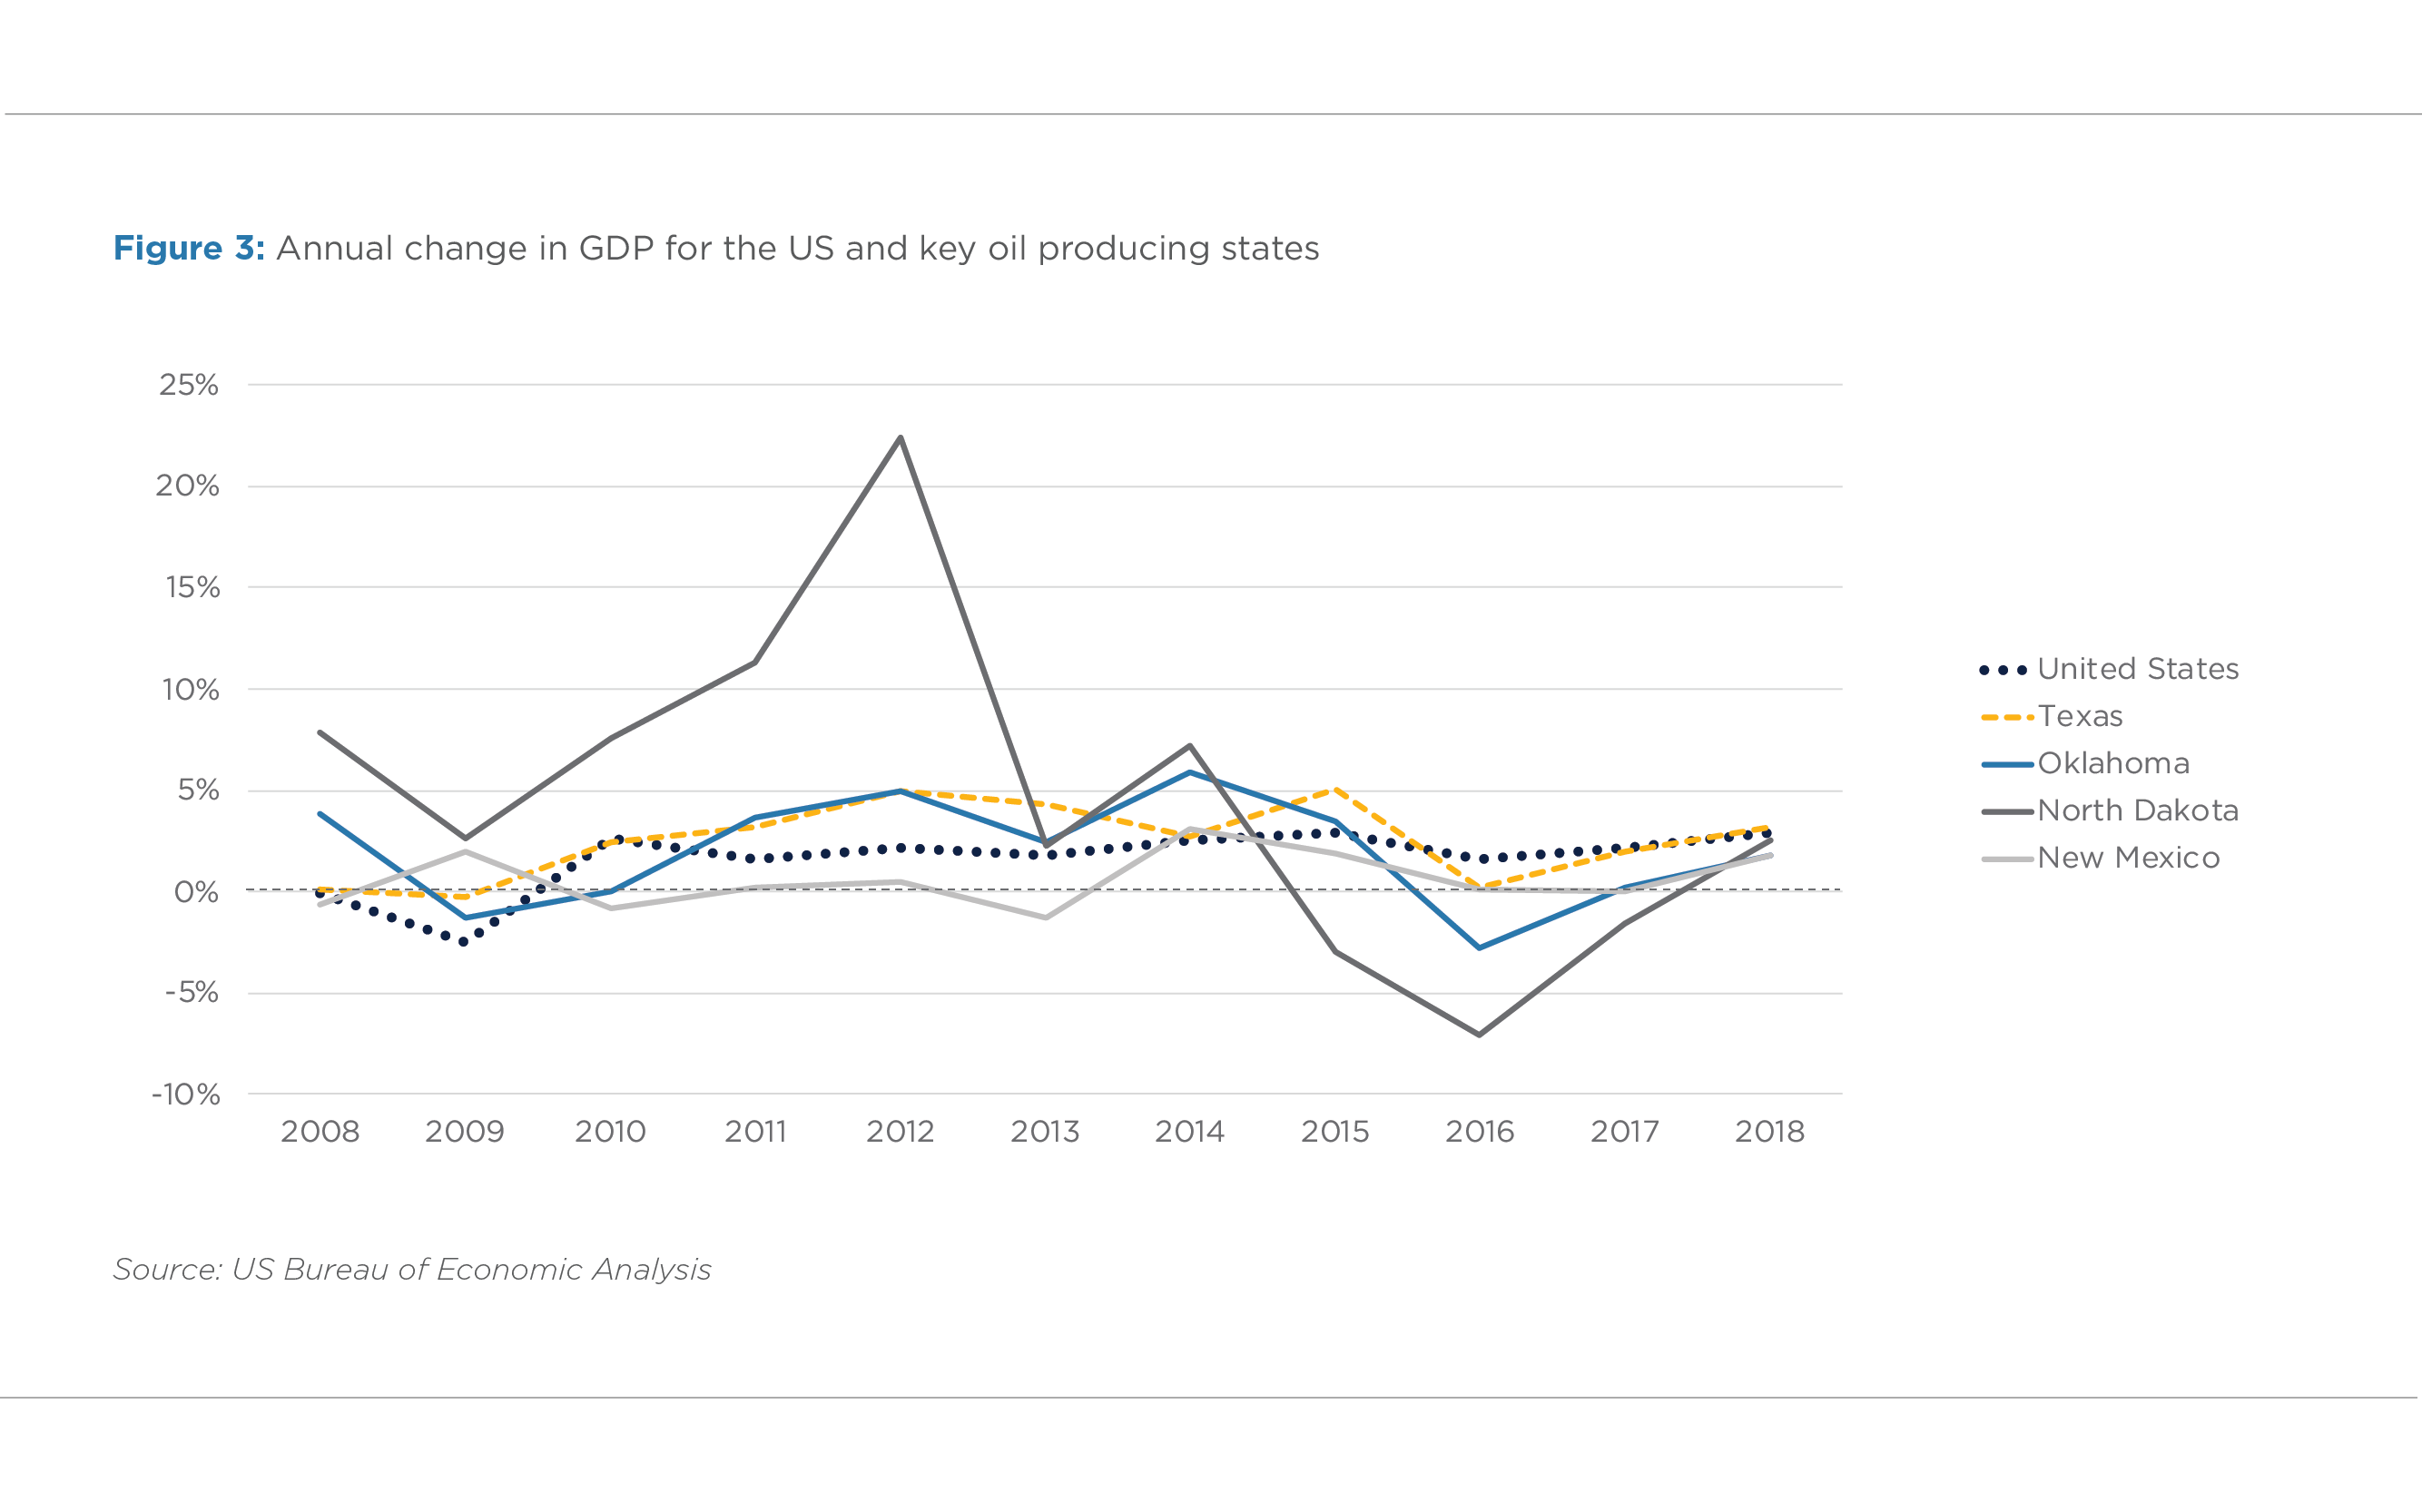 FIGURE 3. ANNUAL CHANGE IN GDP FOR THE US AND KEY OIL PRODUCING STATES